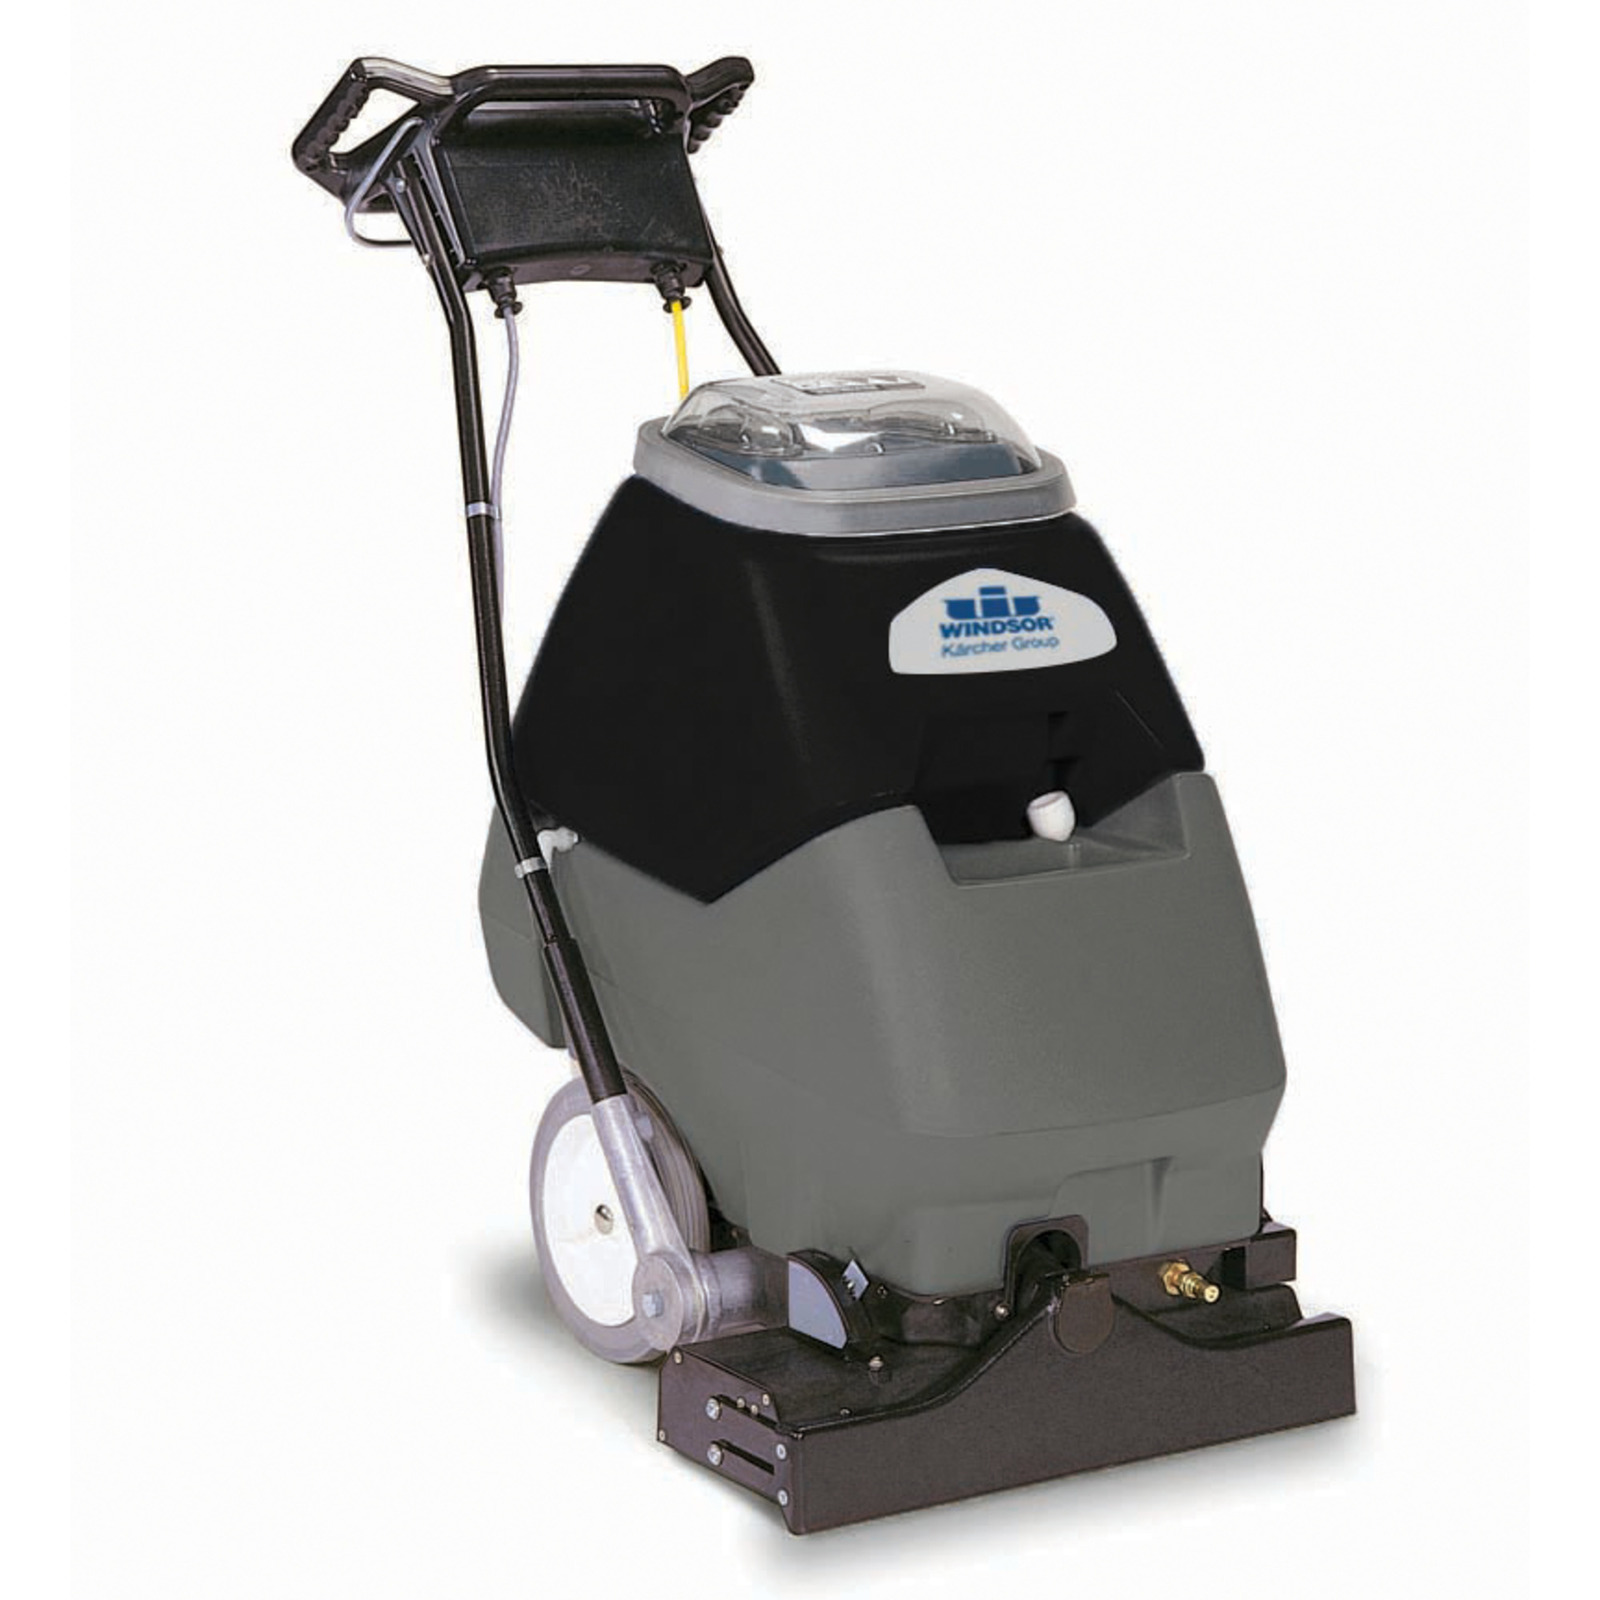 $7,994.99, Windsor Clipper 12 gal Carpet Cleaning Machine 1.008-025.0 FREE Shipping